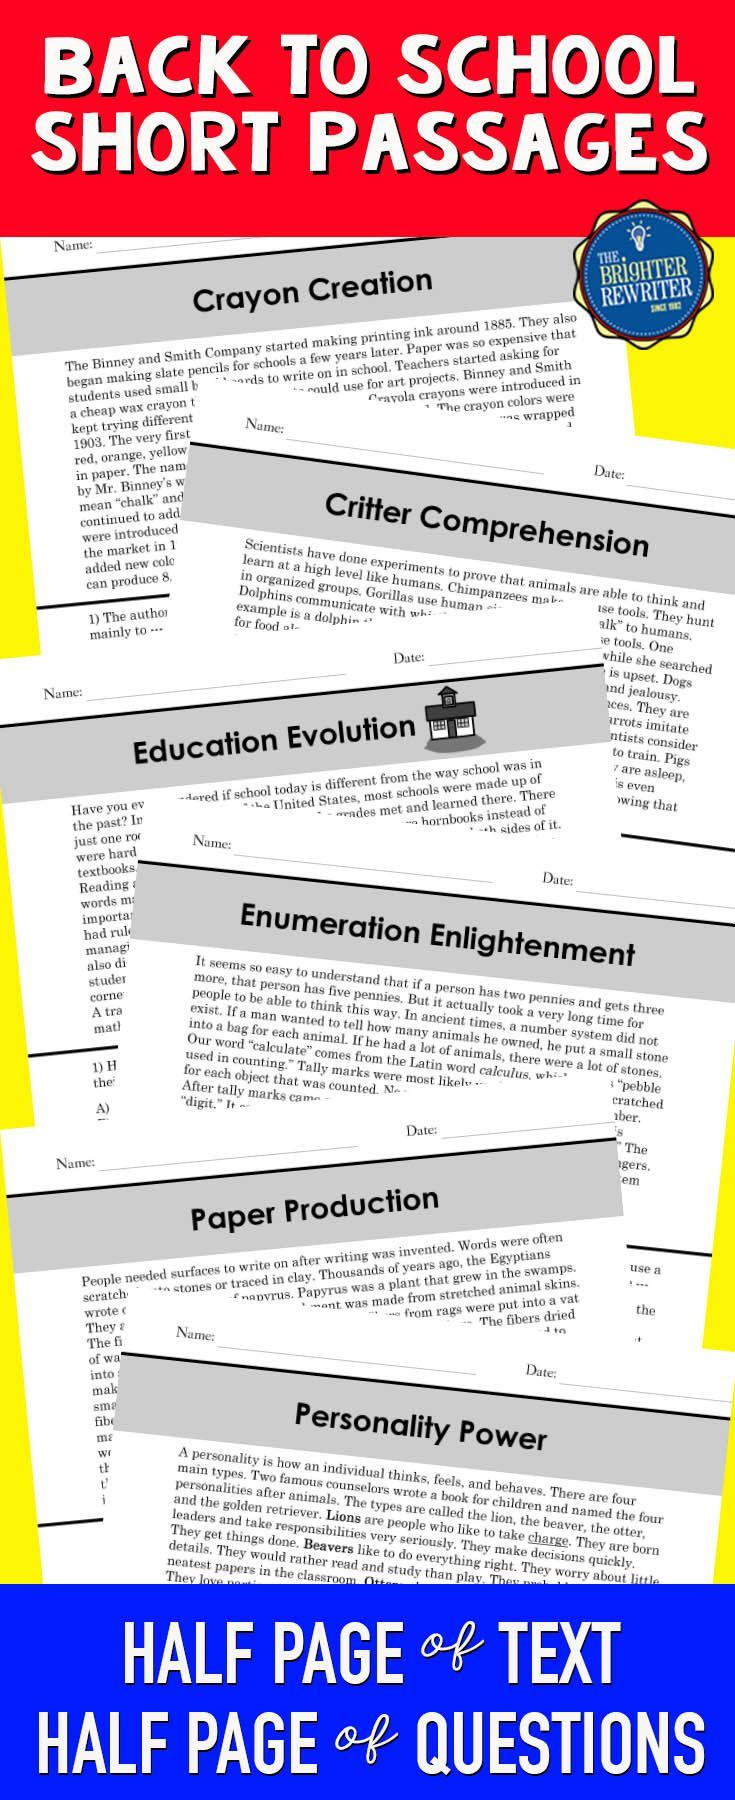 These 6 nonfiction mini-passages have the informational text and 4 multiple-choice comprehension questions on one page. Topics included school history, the invention of crayons, how paper is made, the history of counting, animal intelligence, and the four types of personalities. Great for back to school or anytime reading!